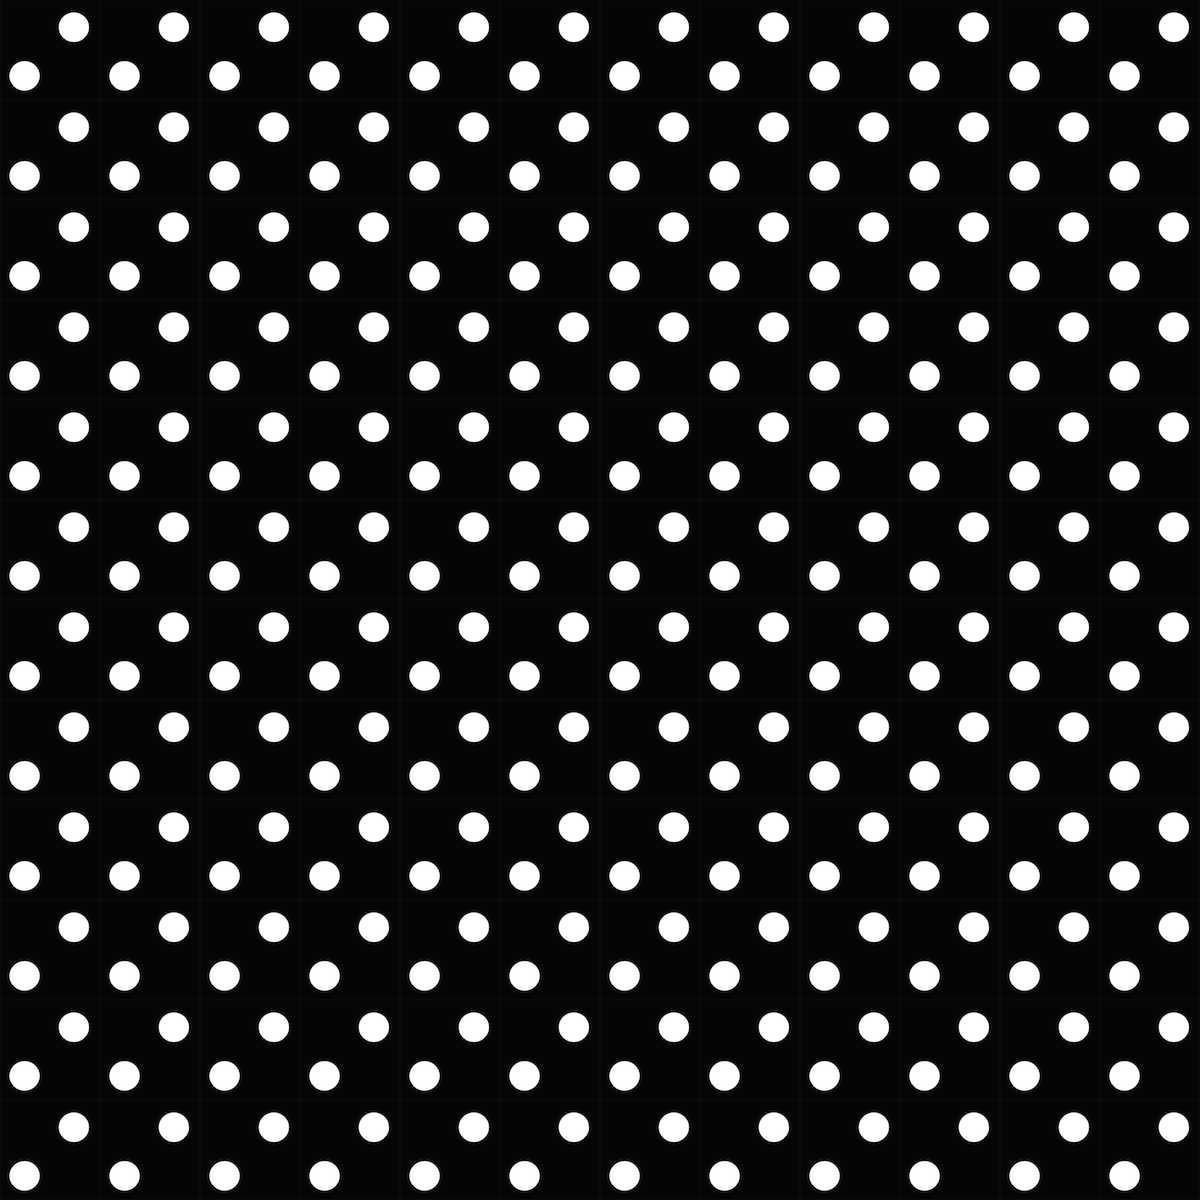 Spotty Wall Stickers Free Digital Black And White Scrapbooking Paper